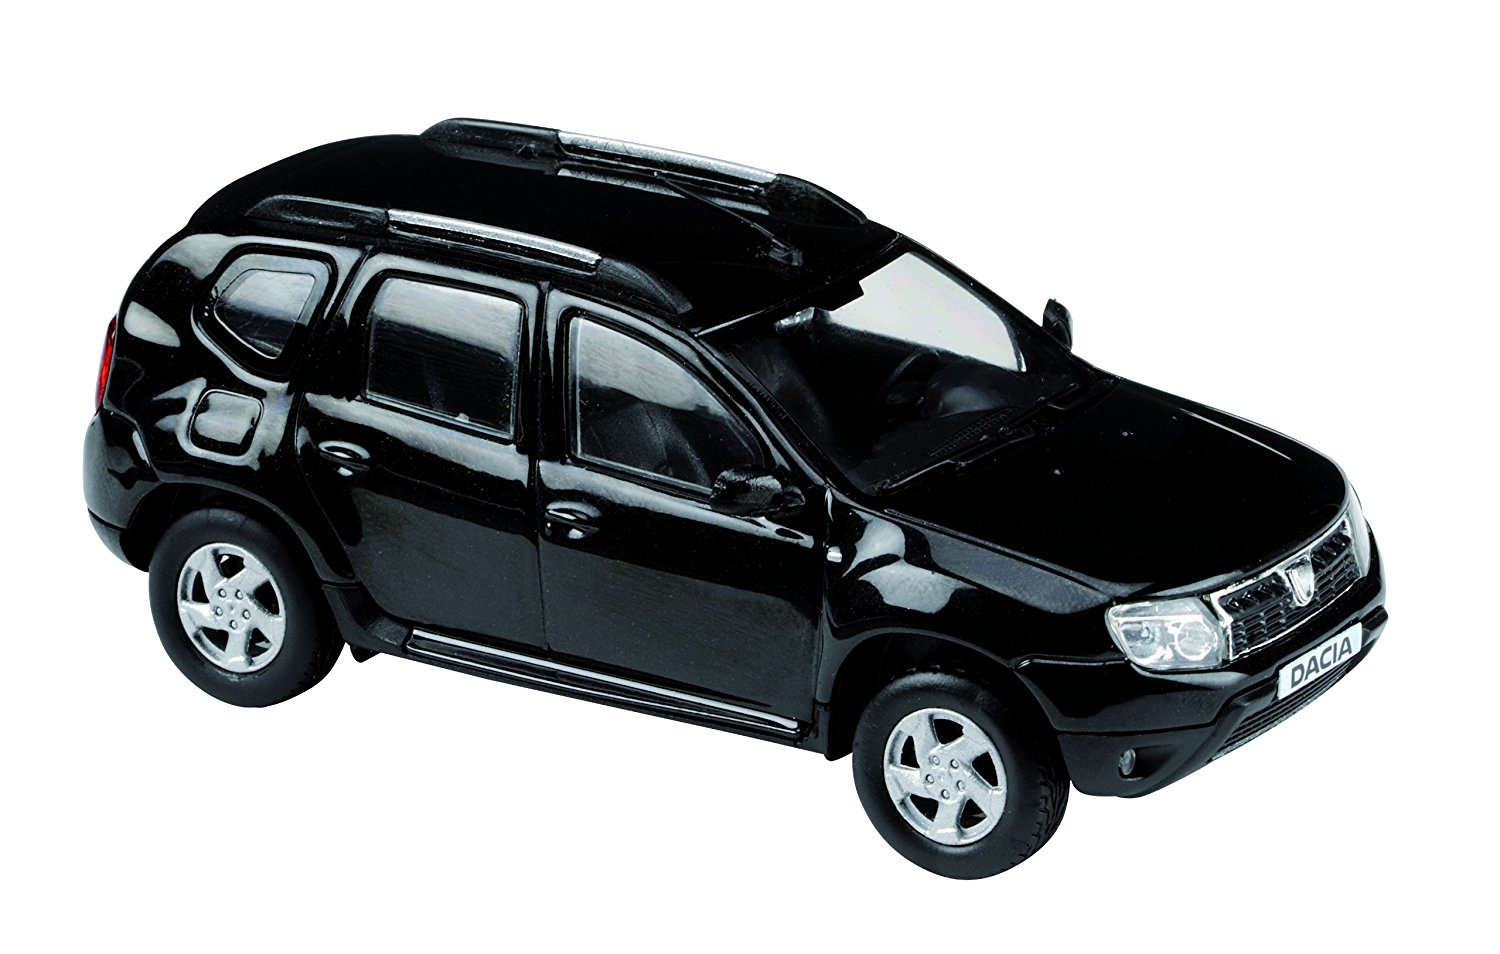 43_Dacia_Duster_Black